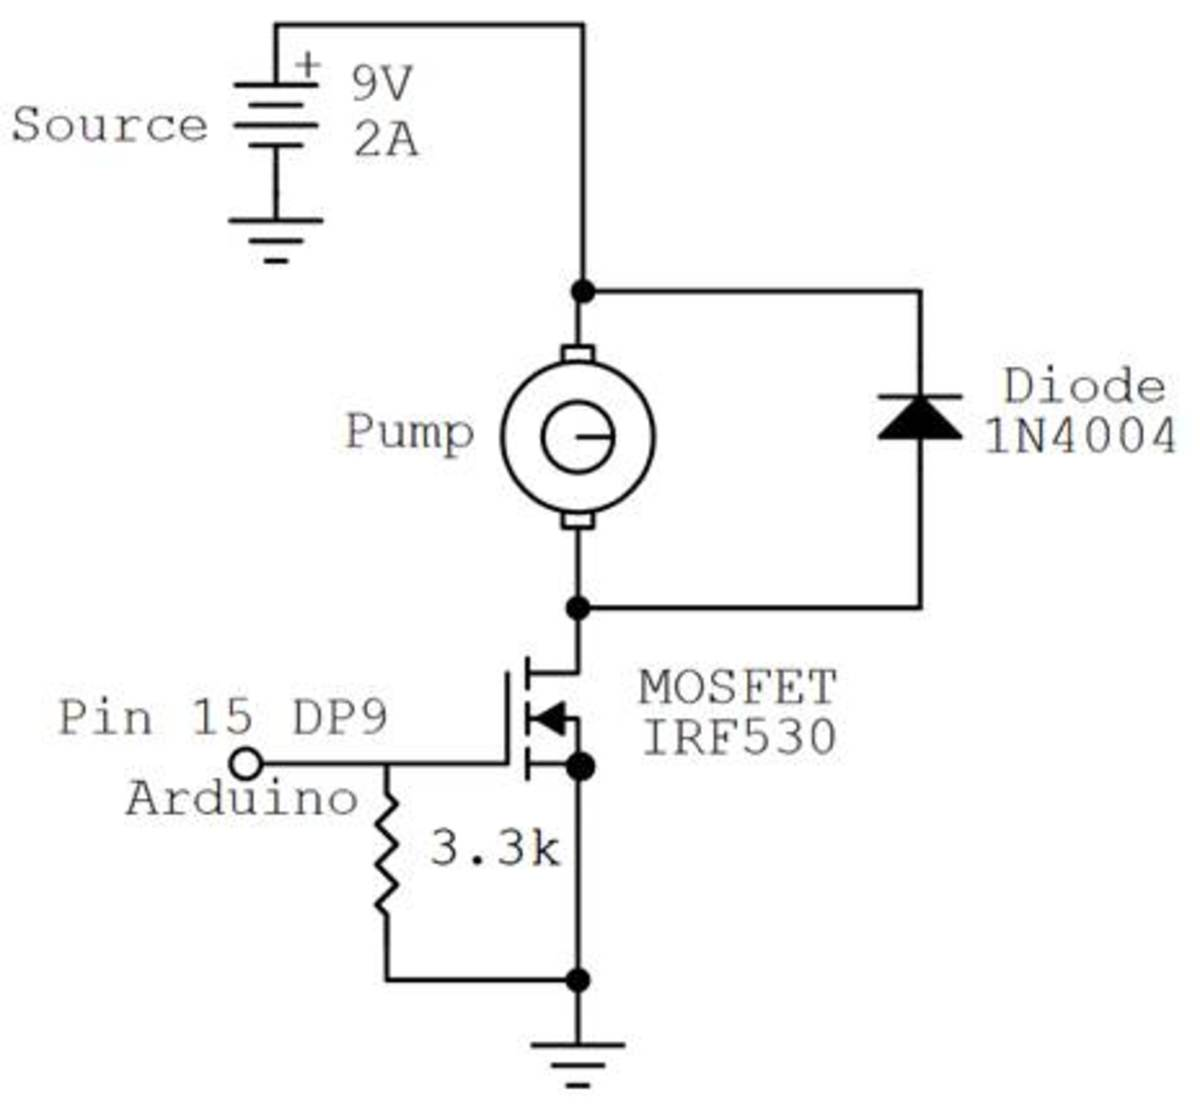 Circuit for a pump connected to an IRF530 and controlled by a PWM signal.